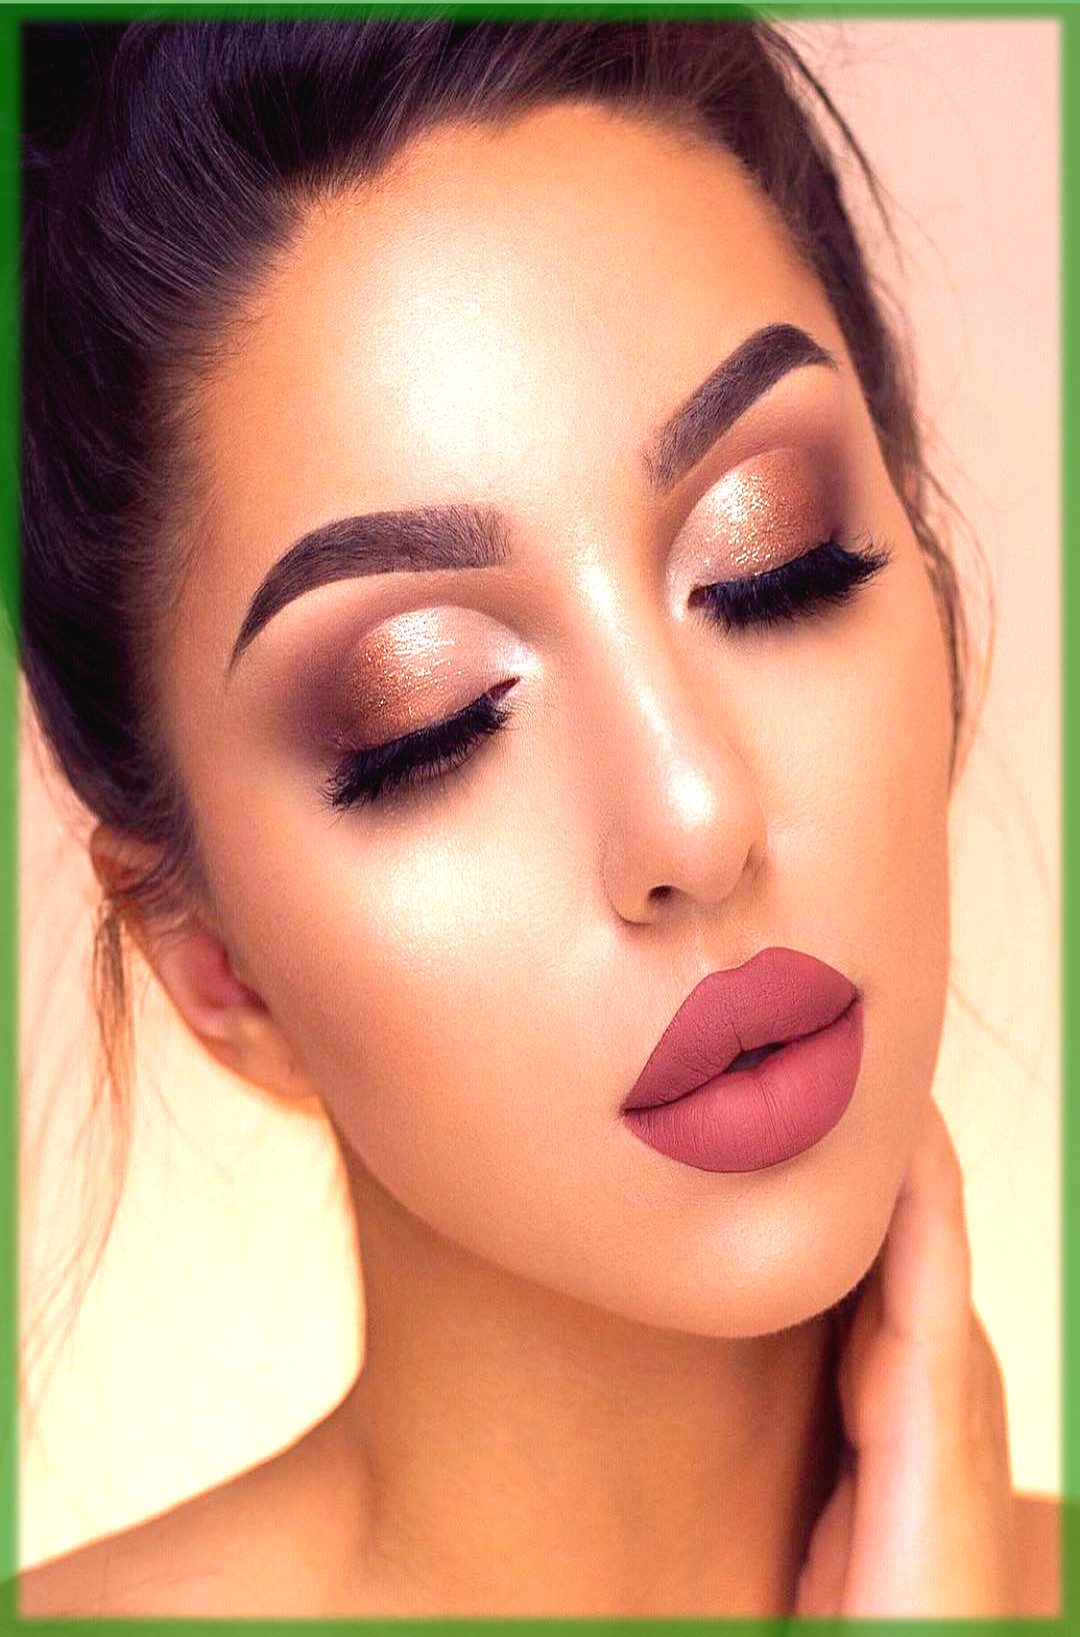 Make your nose look thinner with makeup